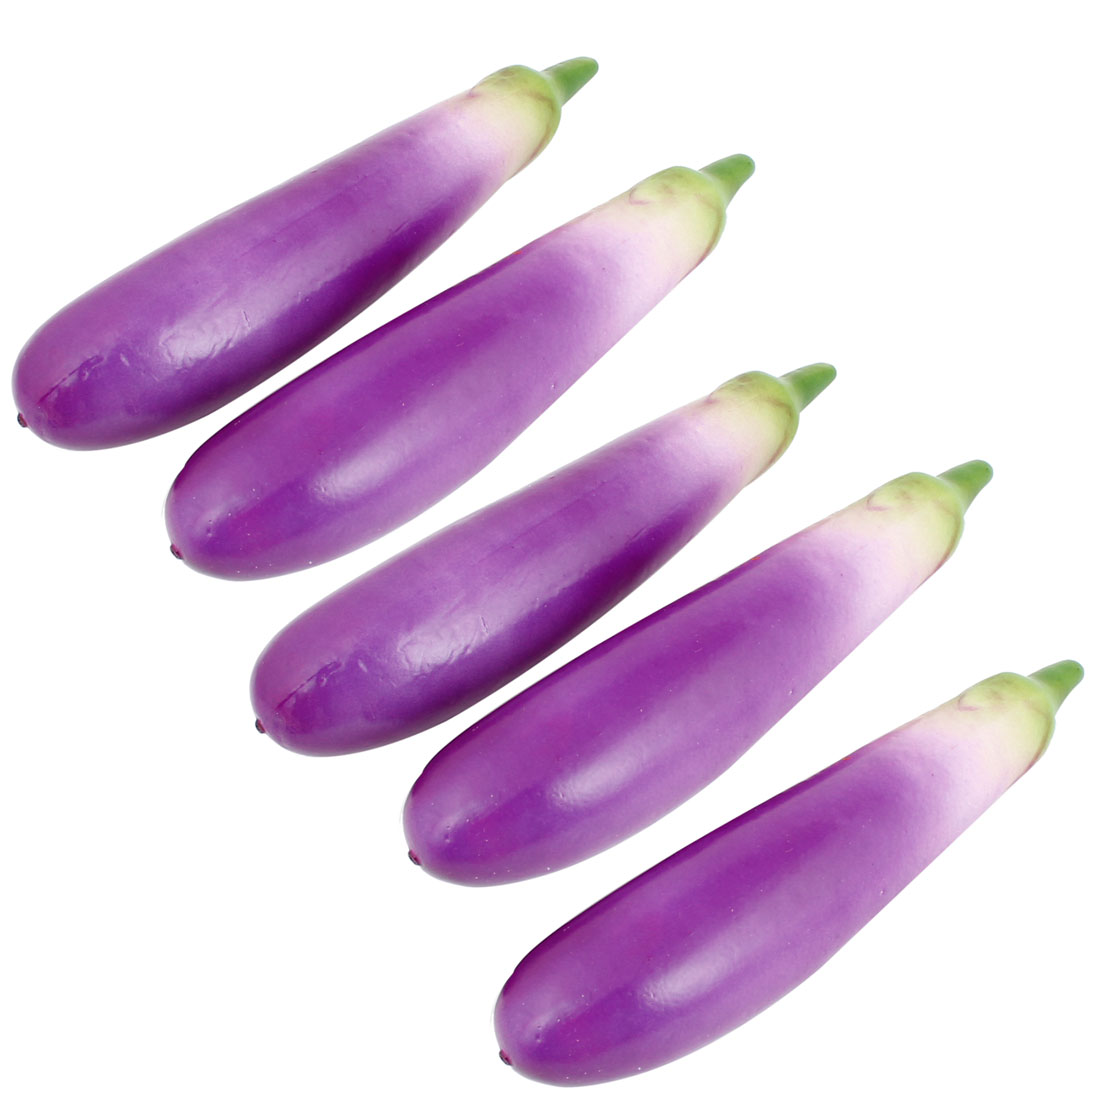 Purple Green Foam Eggplant Aubergine Shape Artificial Desk Table Ornament 5 Pcs